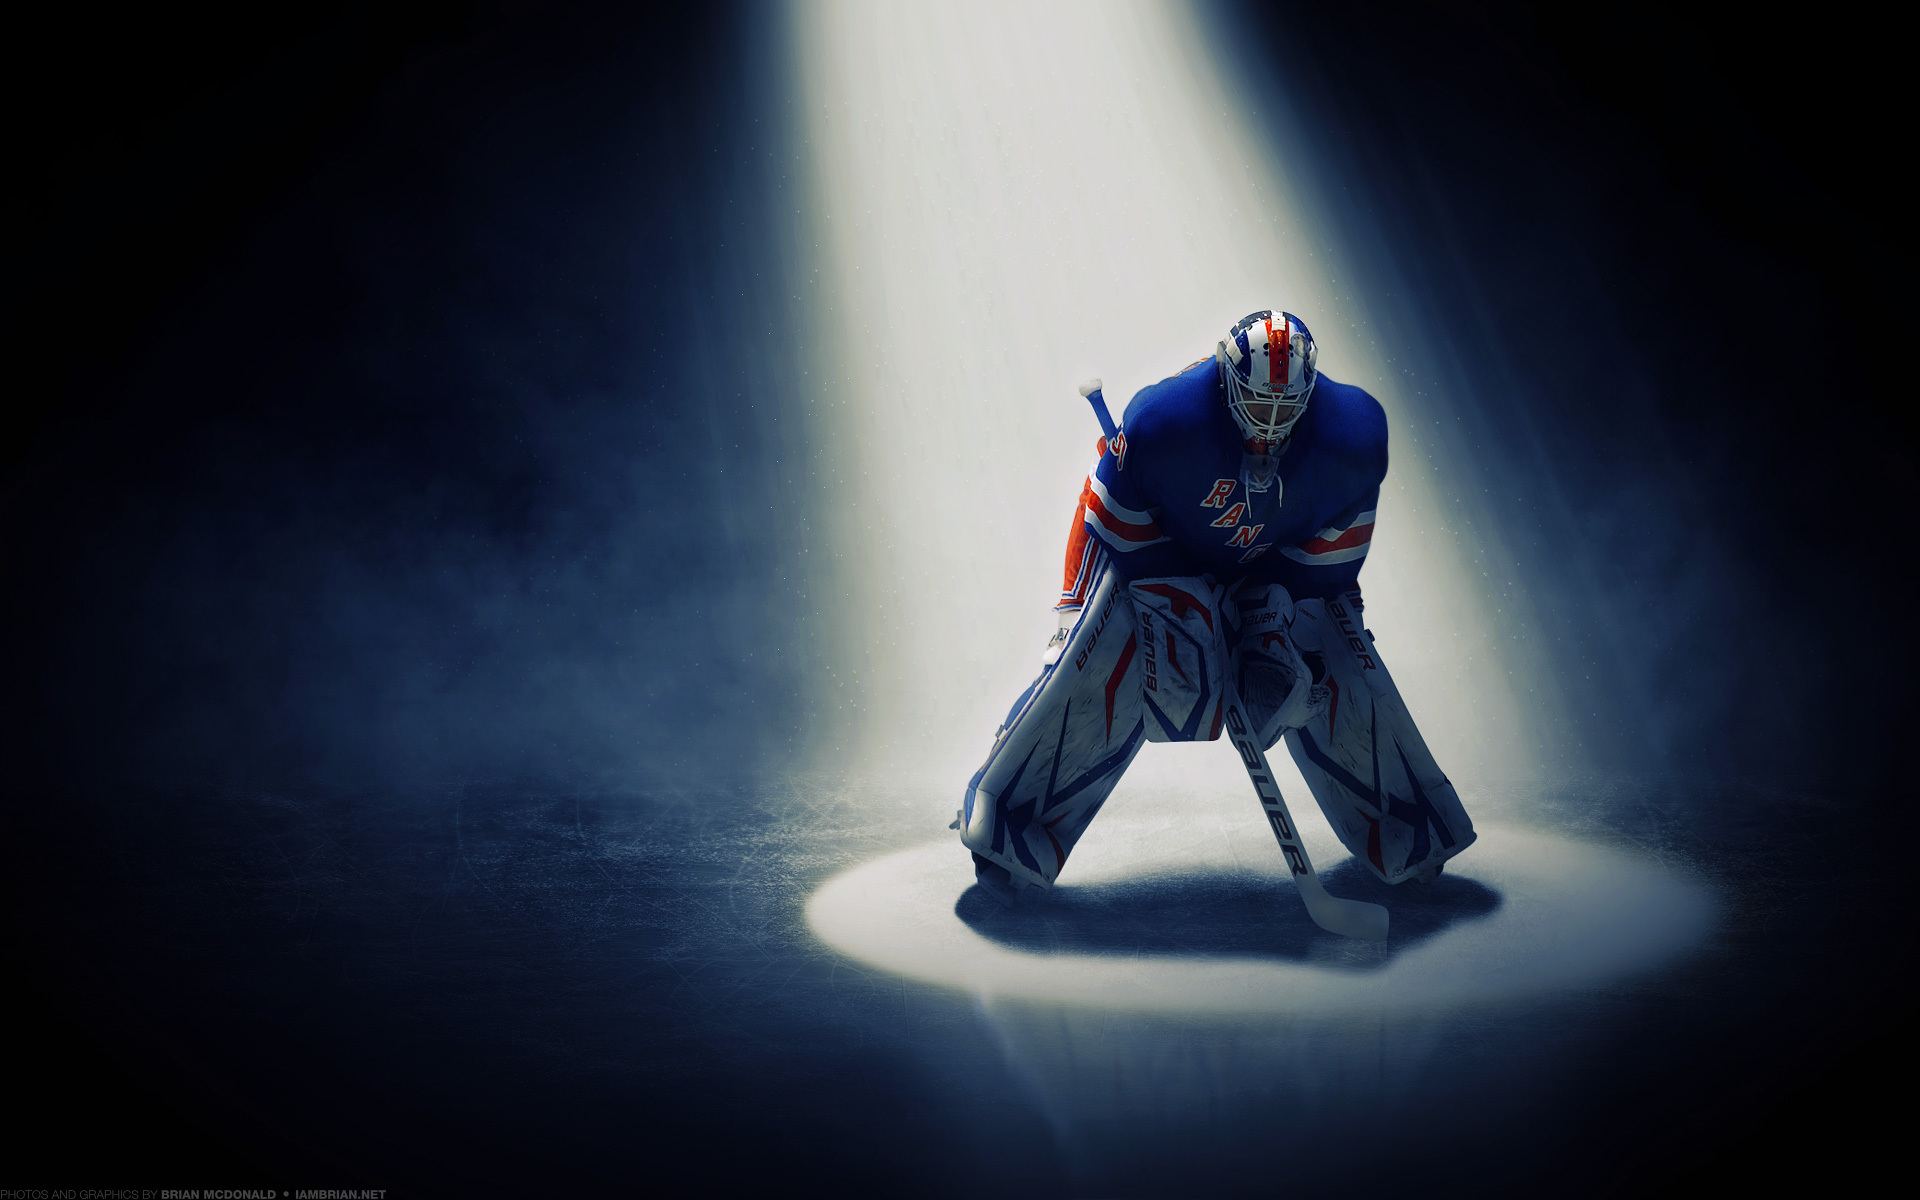 New york rangers Henrik Lundqvist wallpapers and images   wallpapers 1920x1200